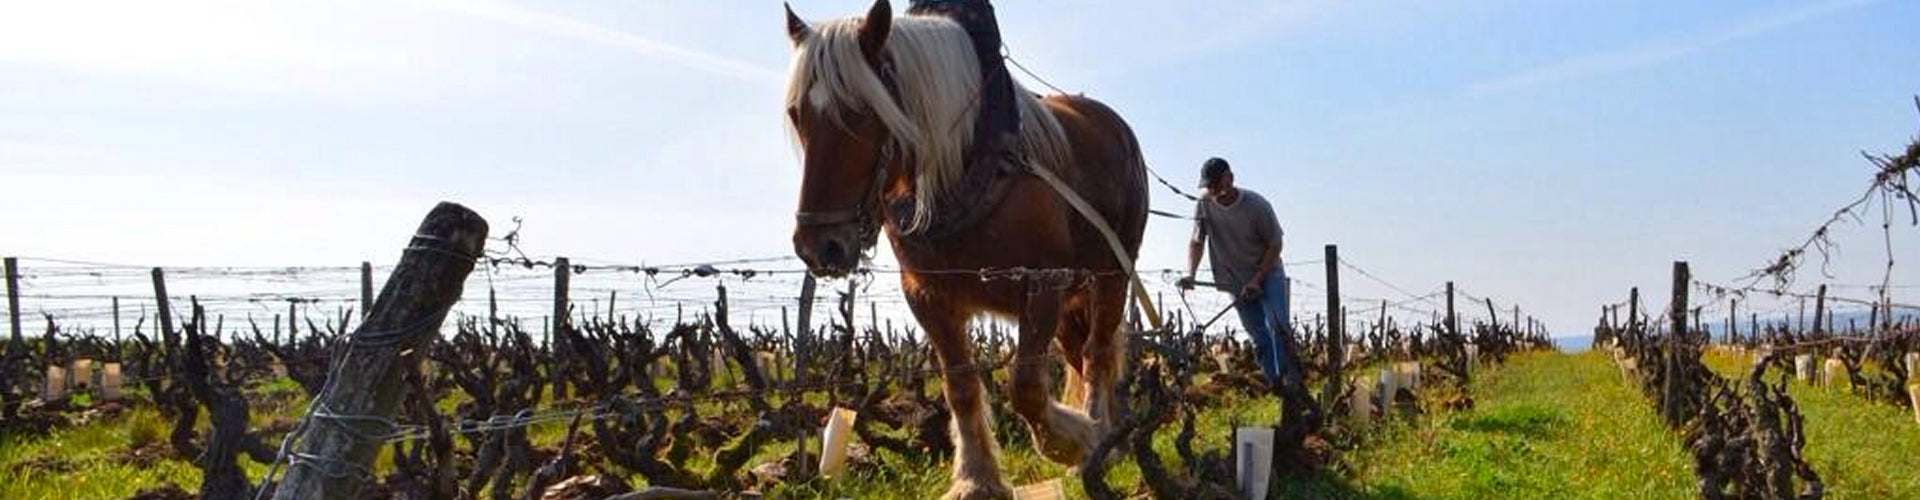 Horse ploughing Domaine Huet Vouvray Vineyards